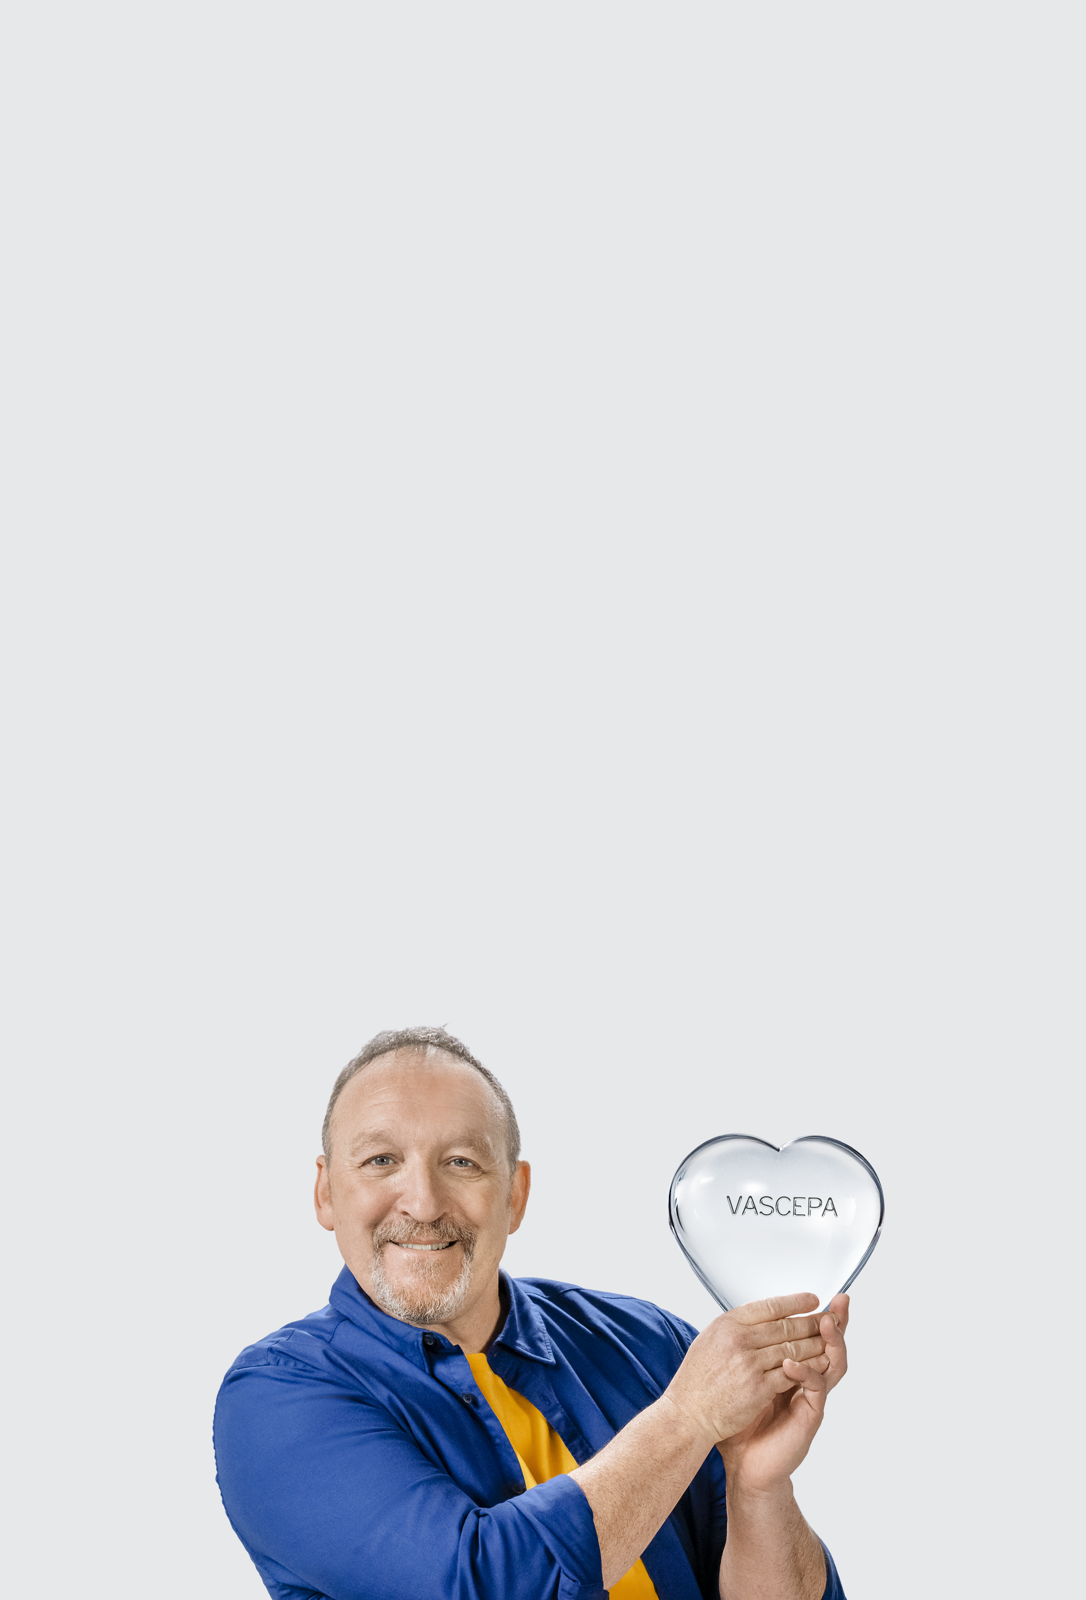 Man holding the clear VASCEPA® (icosapent ethyl) heart, celebrating 25% less more heart protection with VASCEPA® (icosapent ethyl)